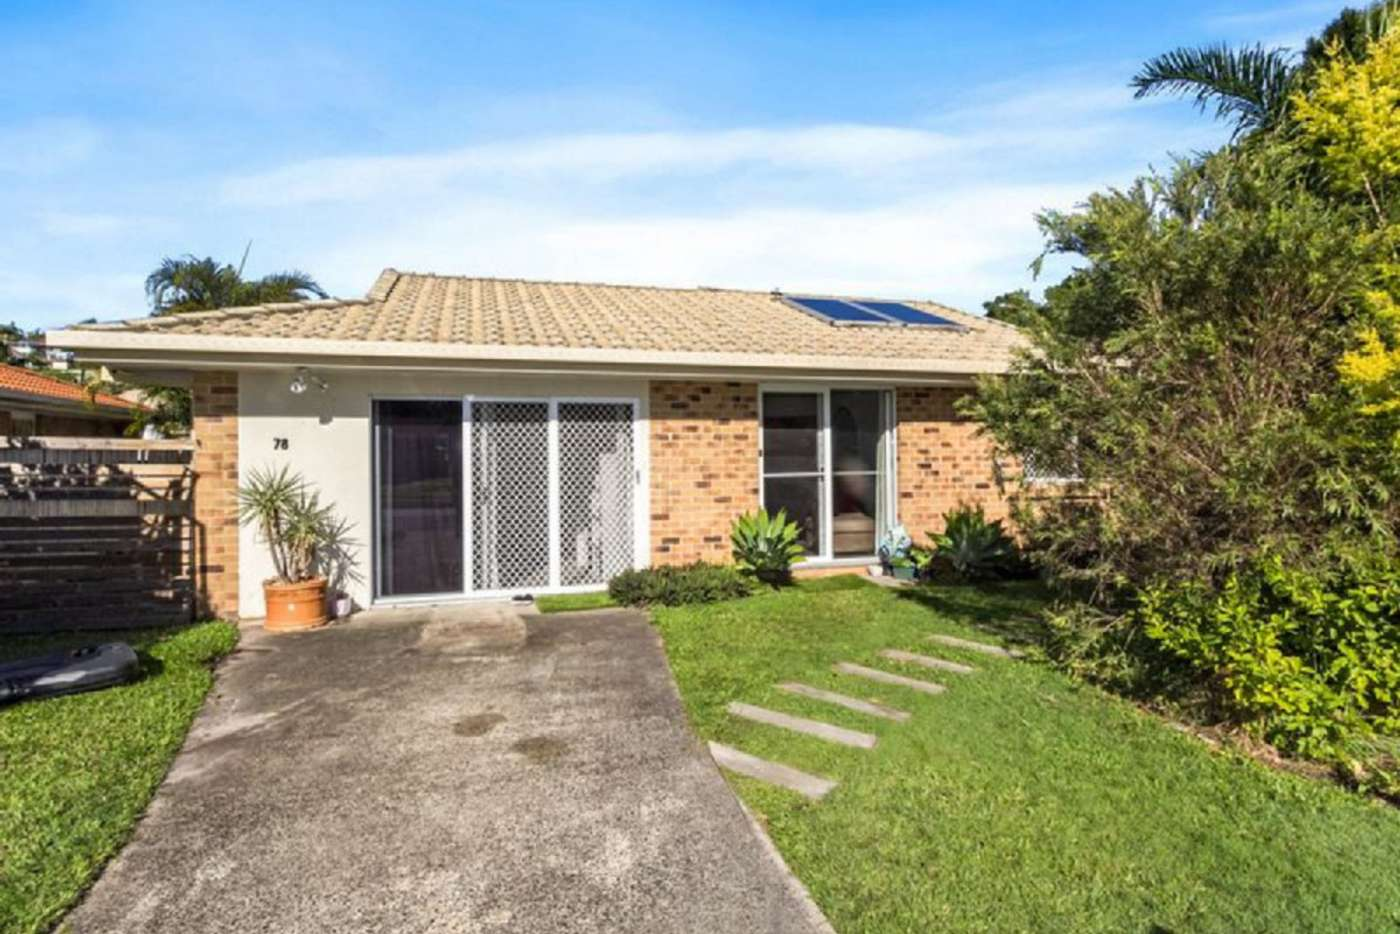 Main view of Homely house listing, 78 Covent Gardens Way, Banora Point NSW 2486